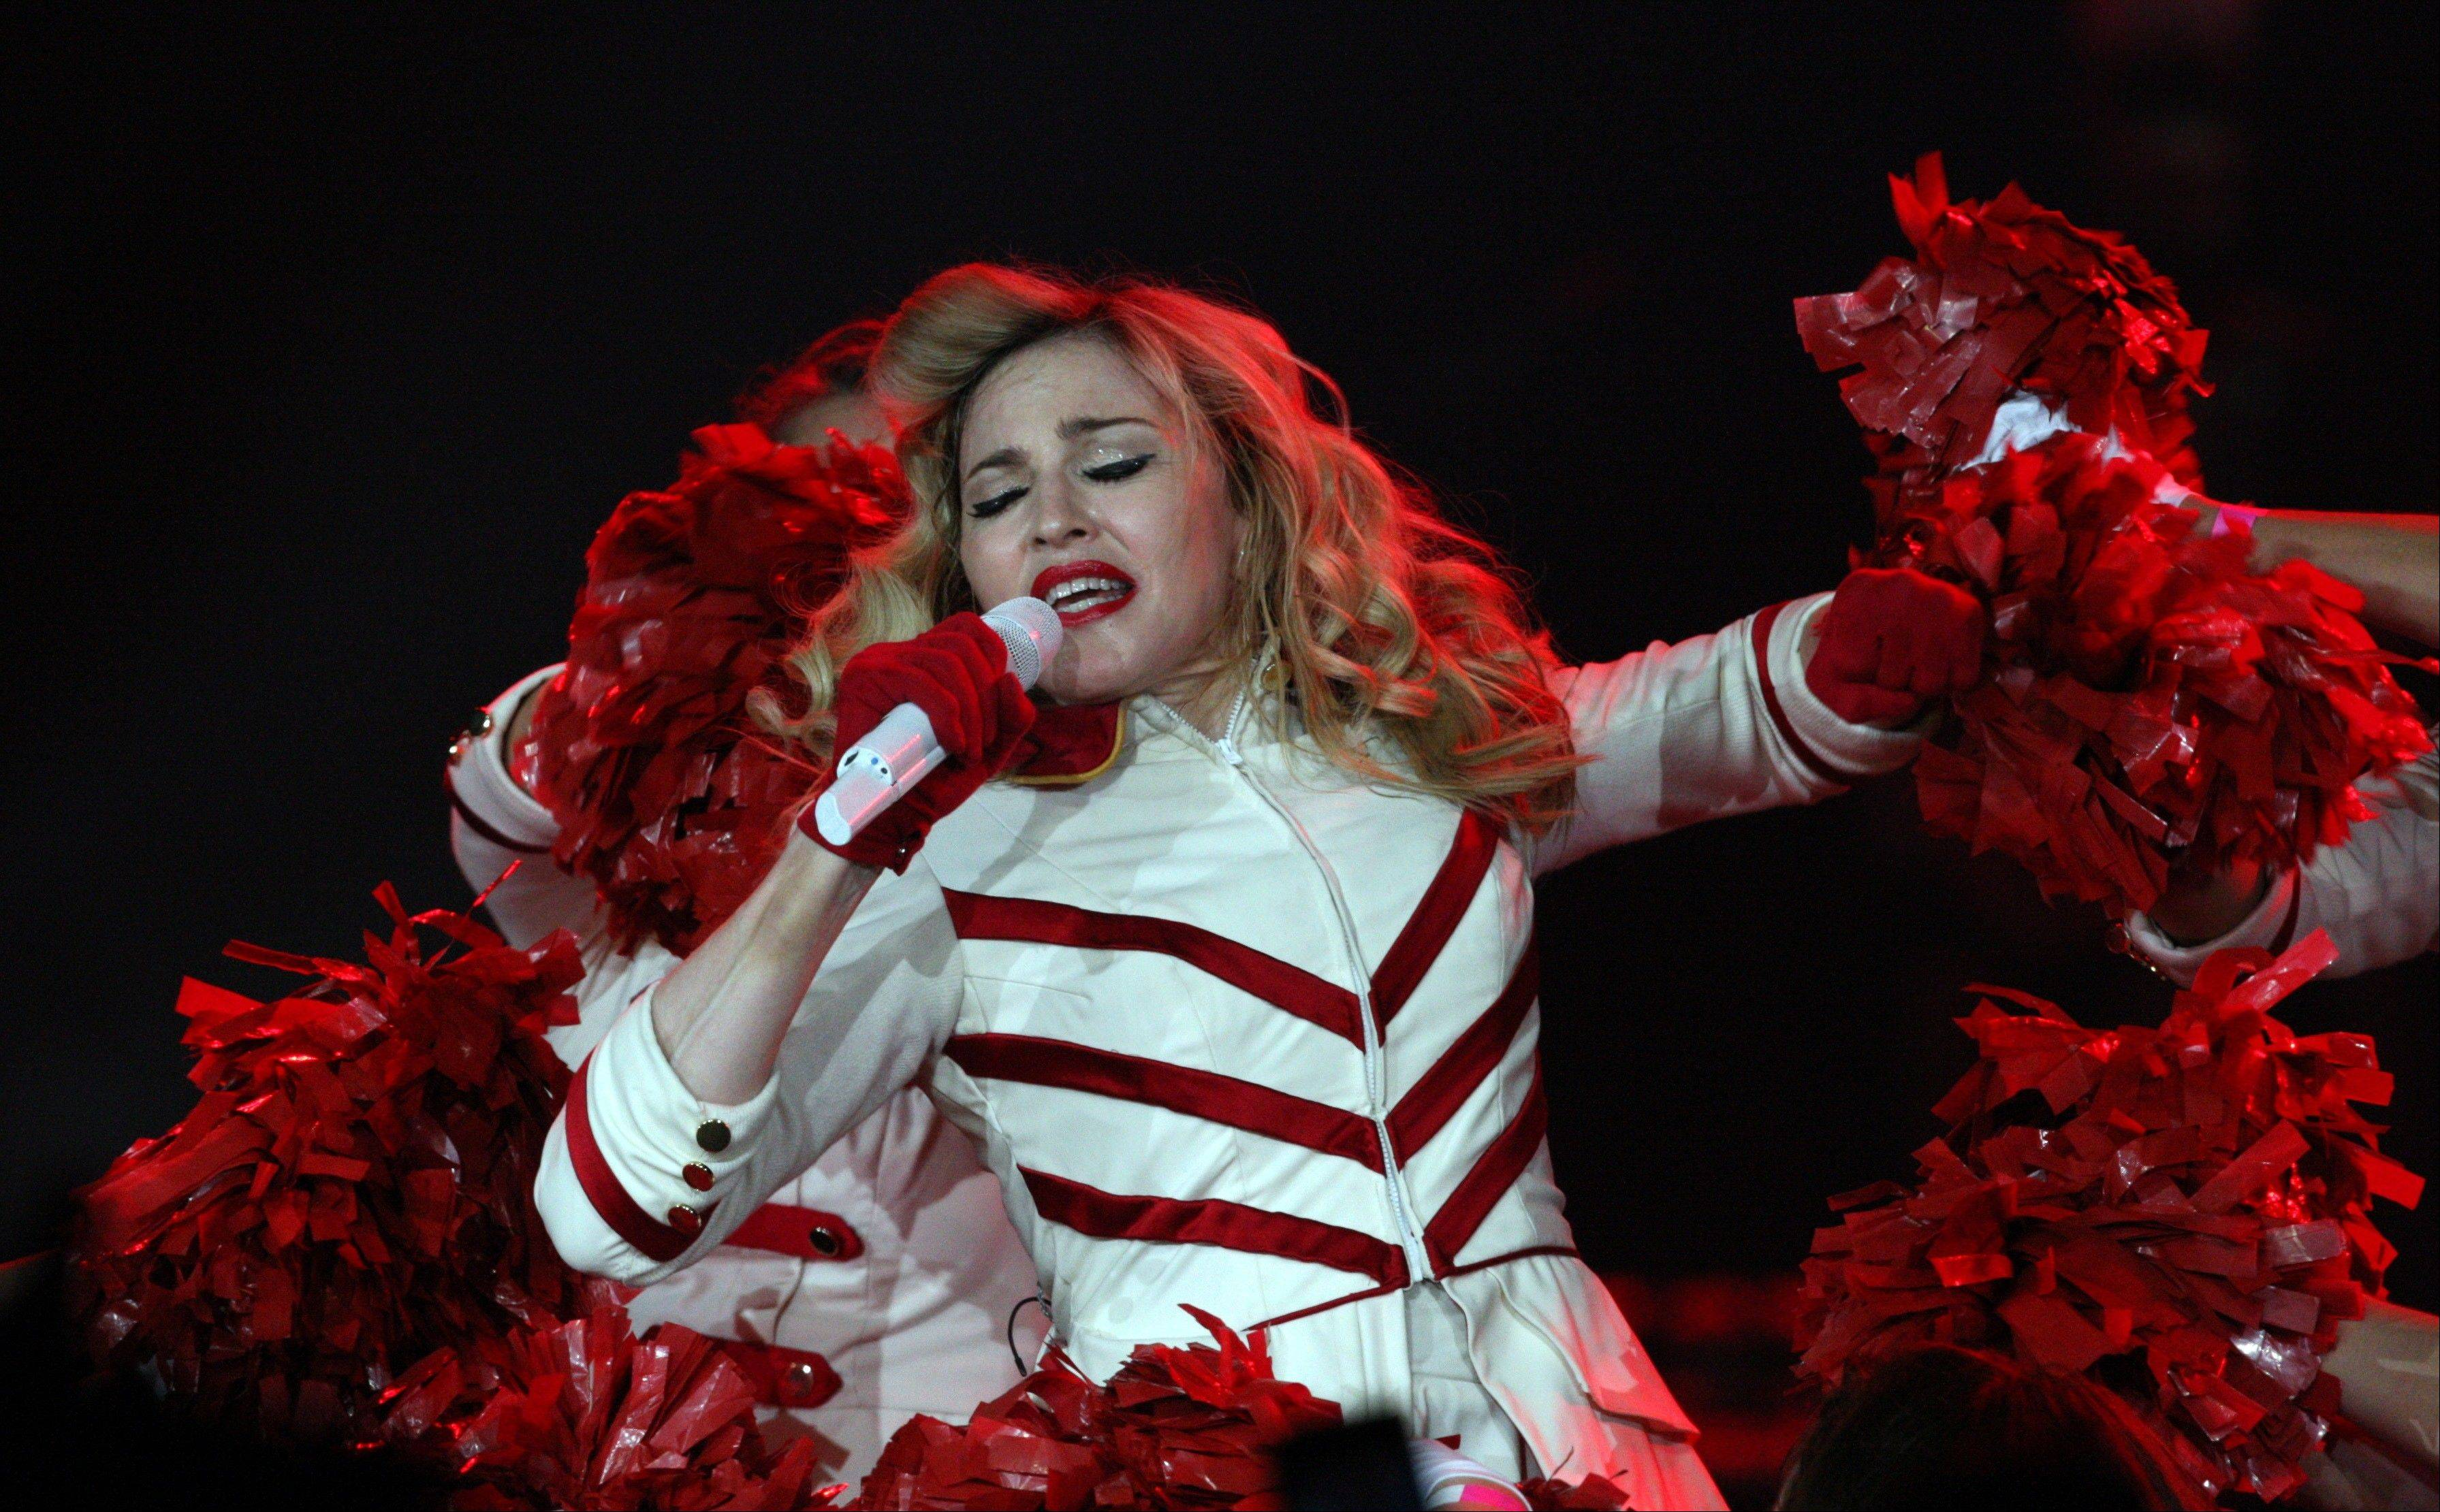 A Russian court has dismissed a lawsuit that sought millions of dollars in damages from Madonna for allegedly traumatizing minors by speaking up for gay rights during a concert in St. Petersburg.